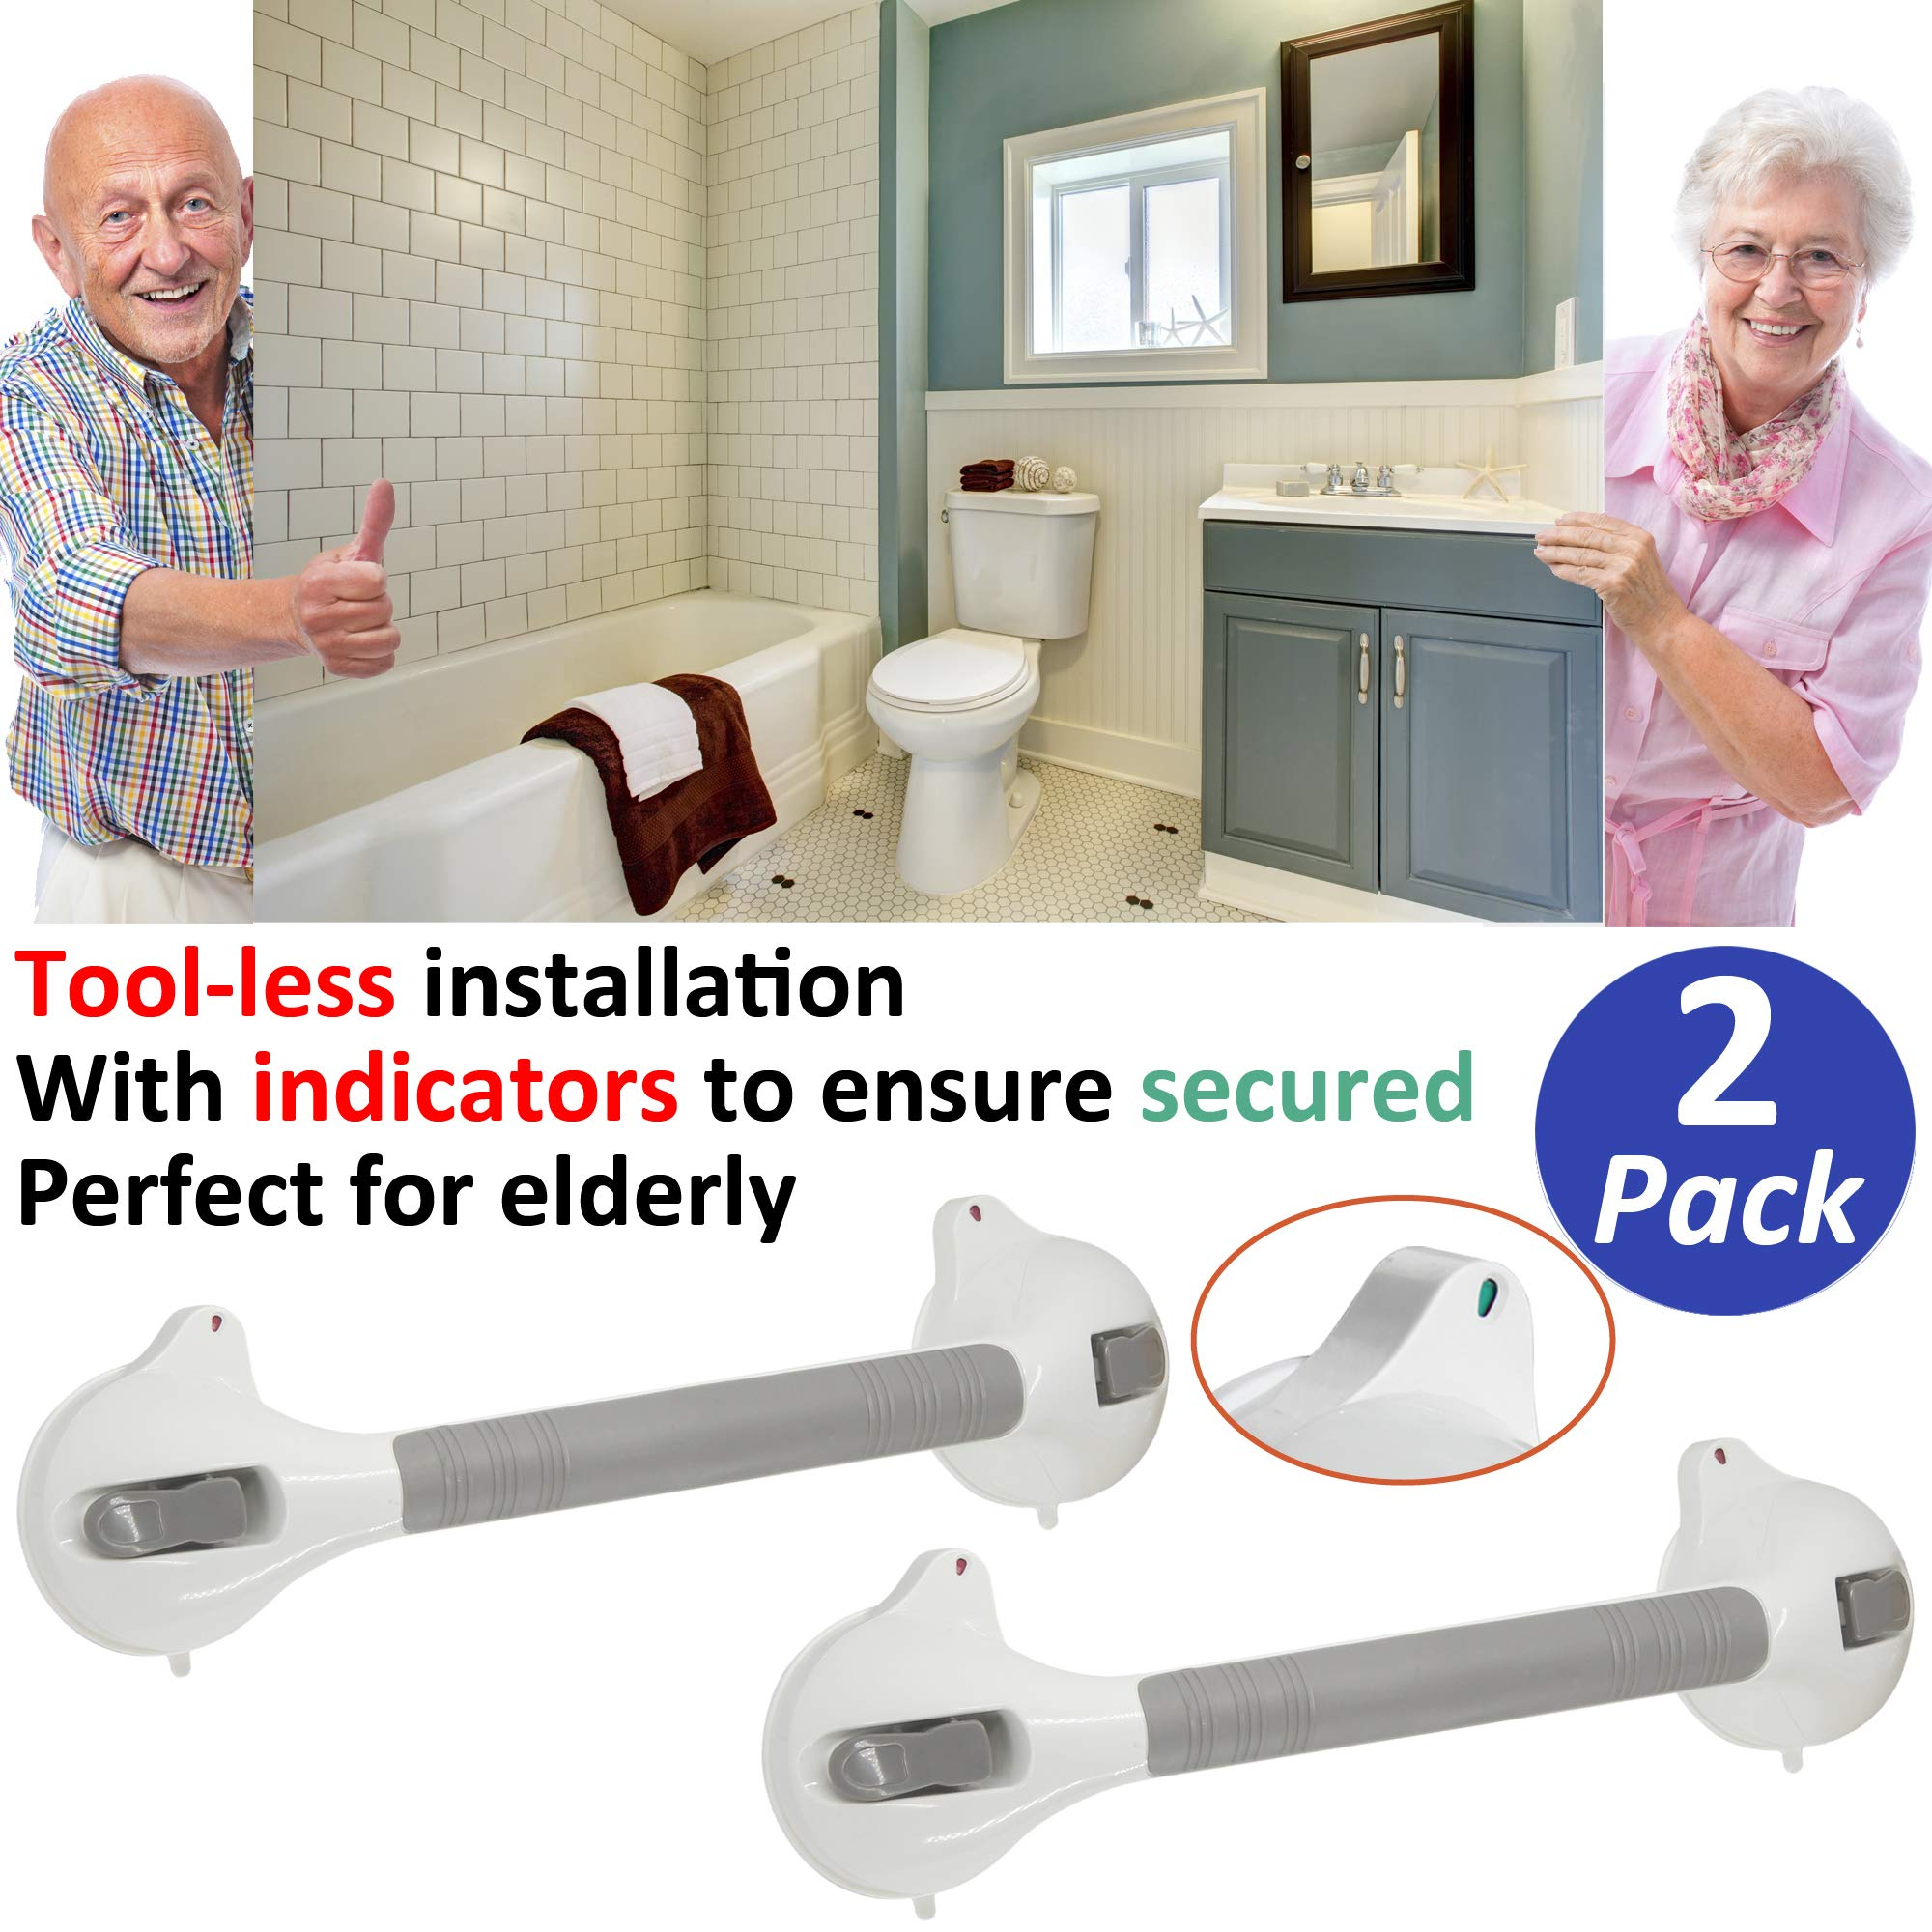 AmeriLuck Bath and Shower Suction Grab/Grip Bar with Indicator Shower Handle for Bathroom - 16.5in Medical Assist Balance Hand Rail for Tub Safety - for Elderly/Senior/Handicap (16.5in, 2 Pack) by AmeriLuck (Image #1)